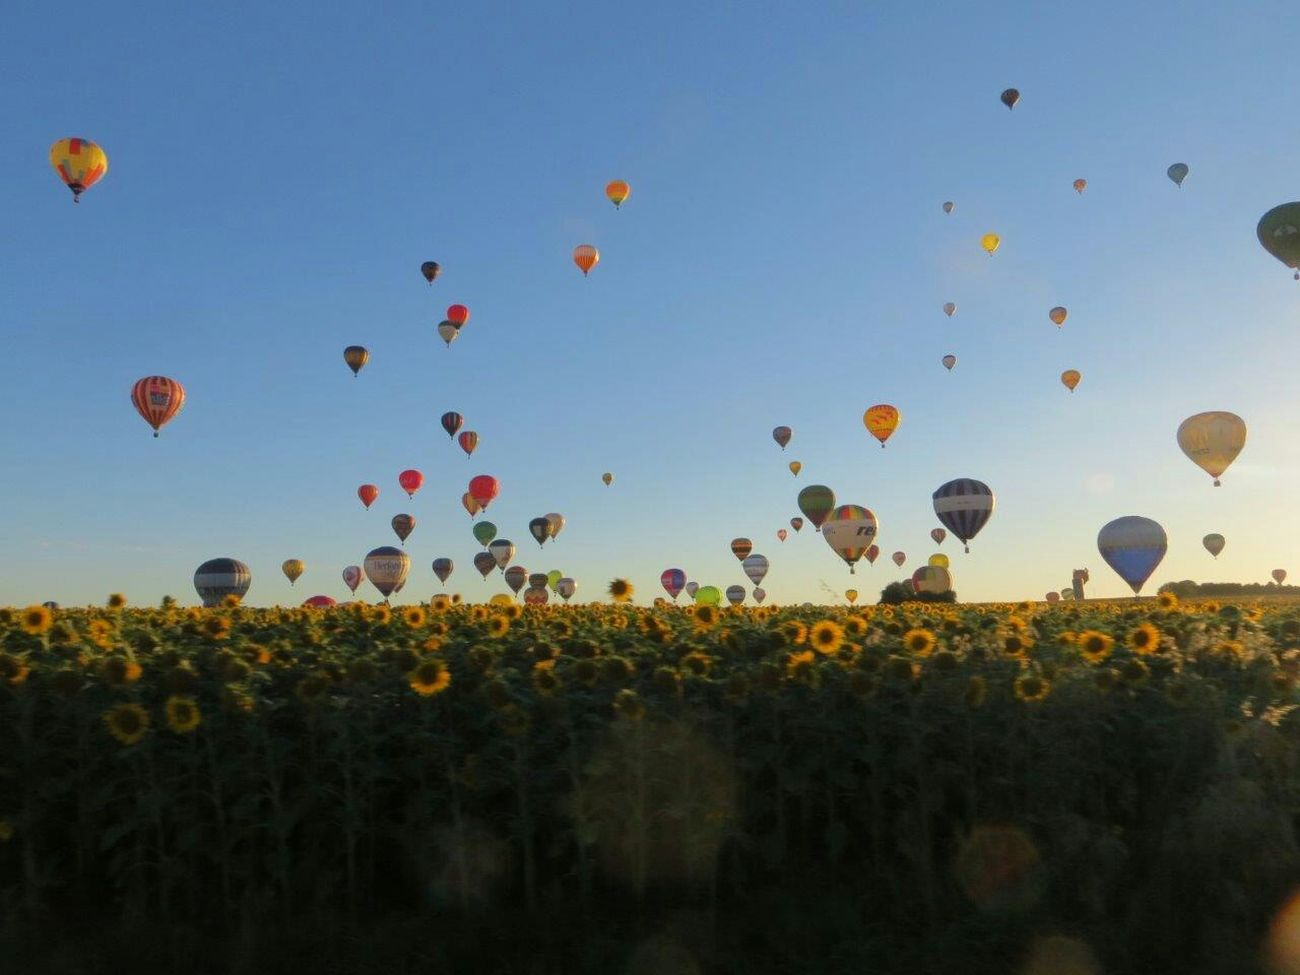 CHAMBLEY Lorraine Lorraine Mondial Air Ballons 2013 LMAB 2013 Hot Air Balloon Montgolfière  Montgolfieres No Filter Sunflowers Sunset